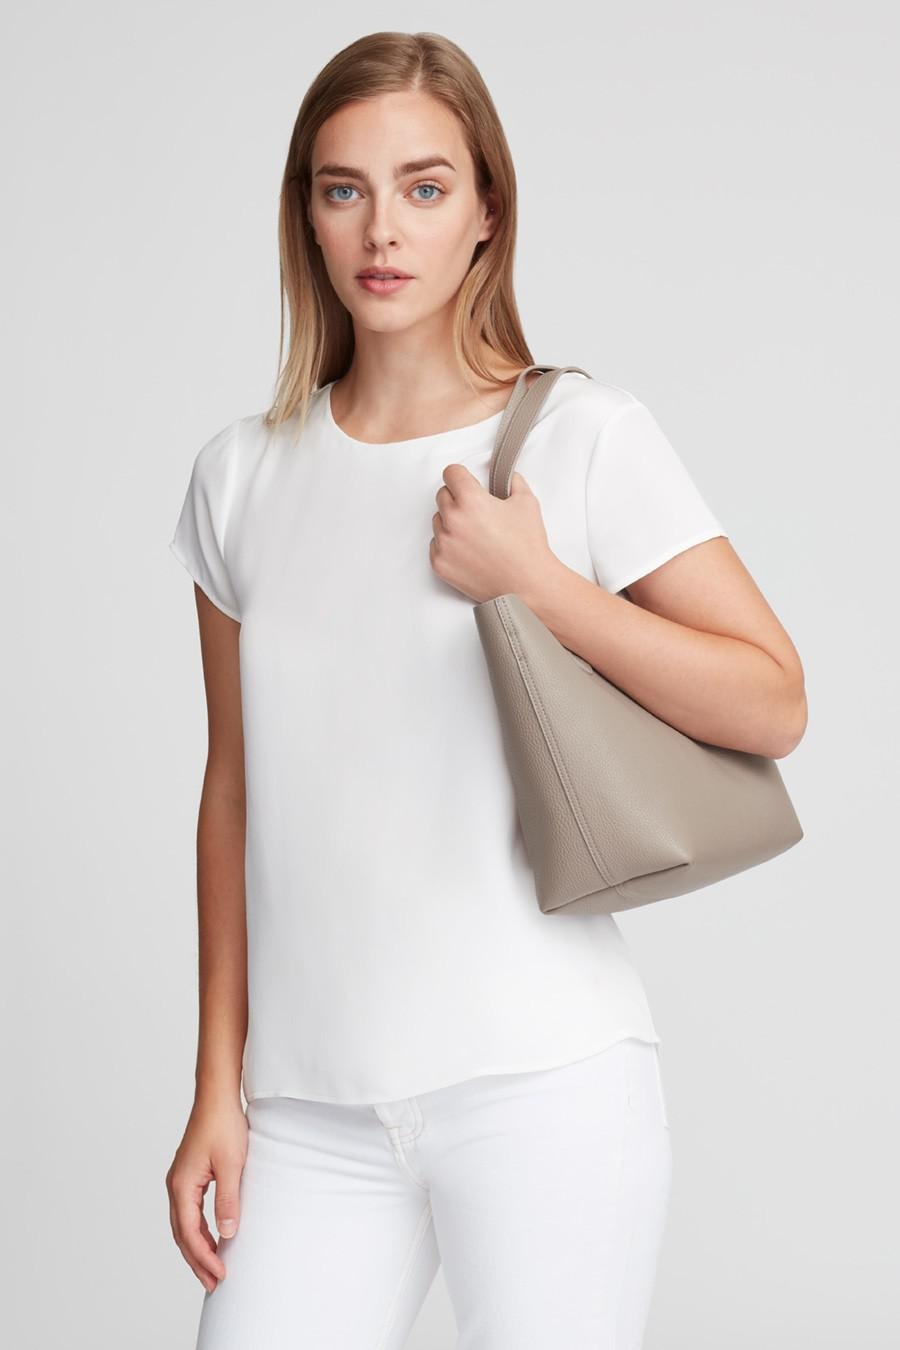 Women's Small Structured Leather Tote Bag in Stone/Blush Pink   Pebbled Leather by Cuyana 6